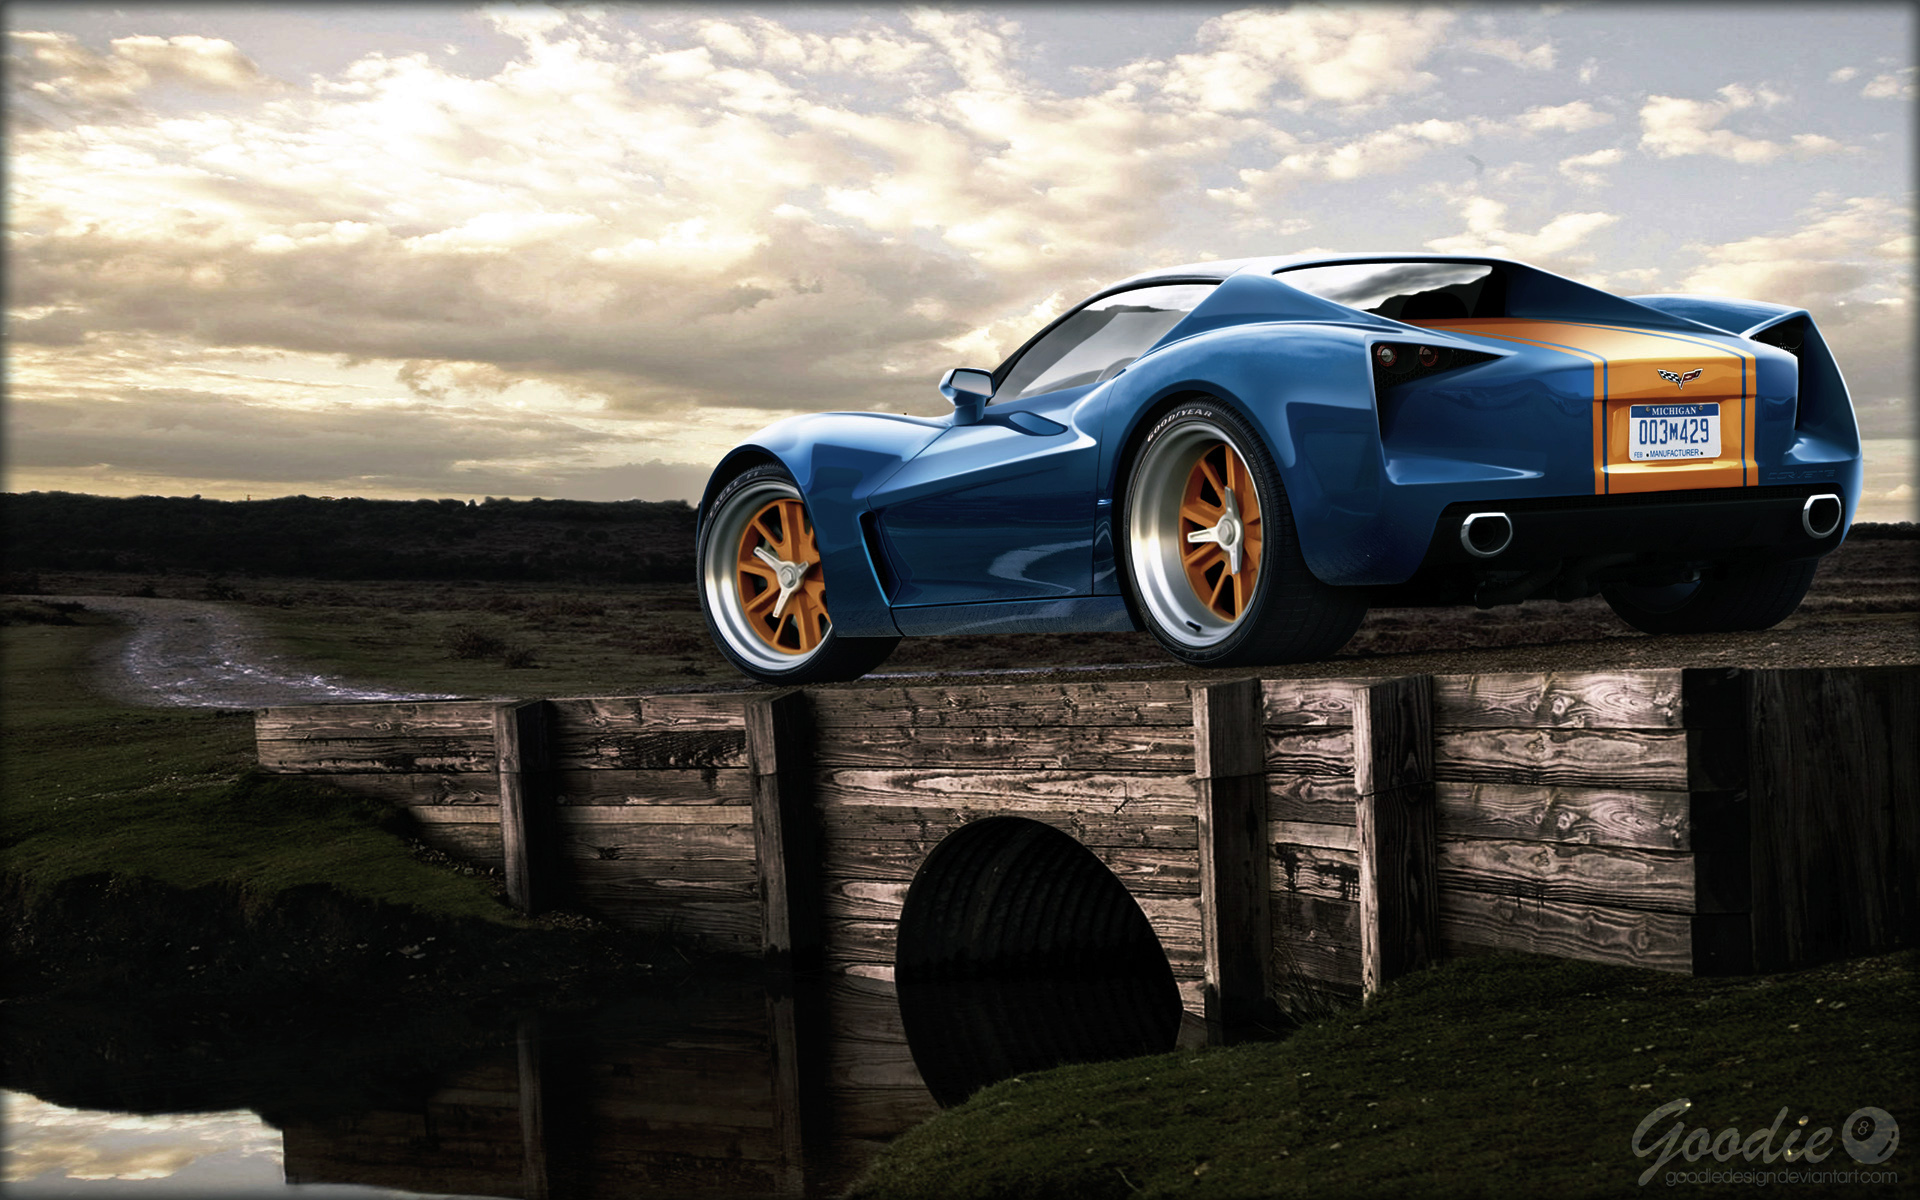 Corvette Stingray Wallpaper Full Desktop